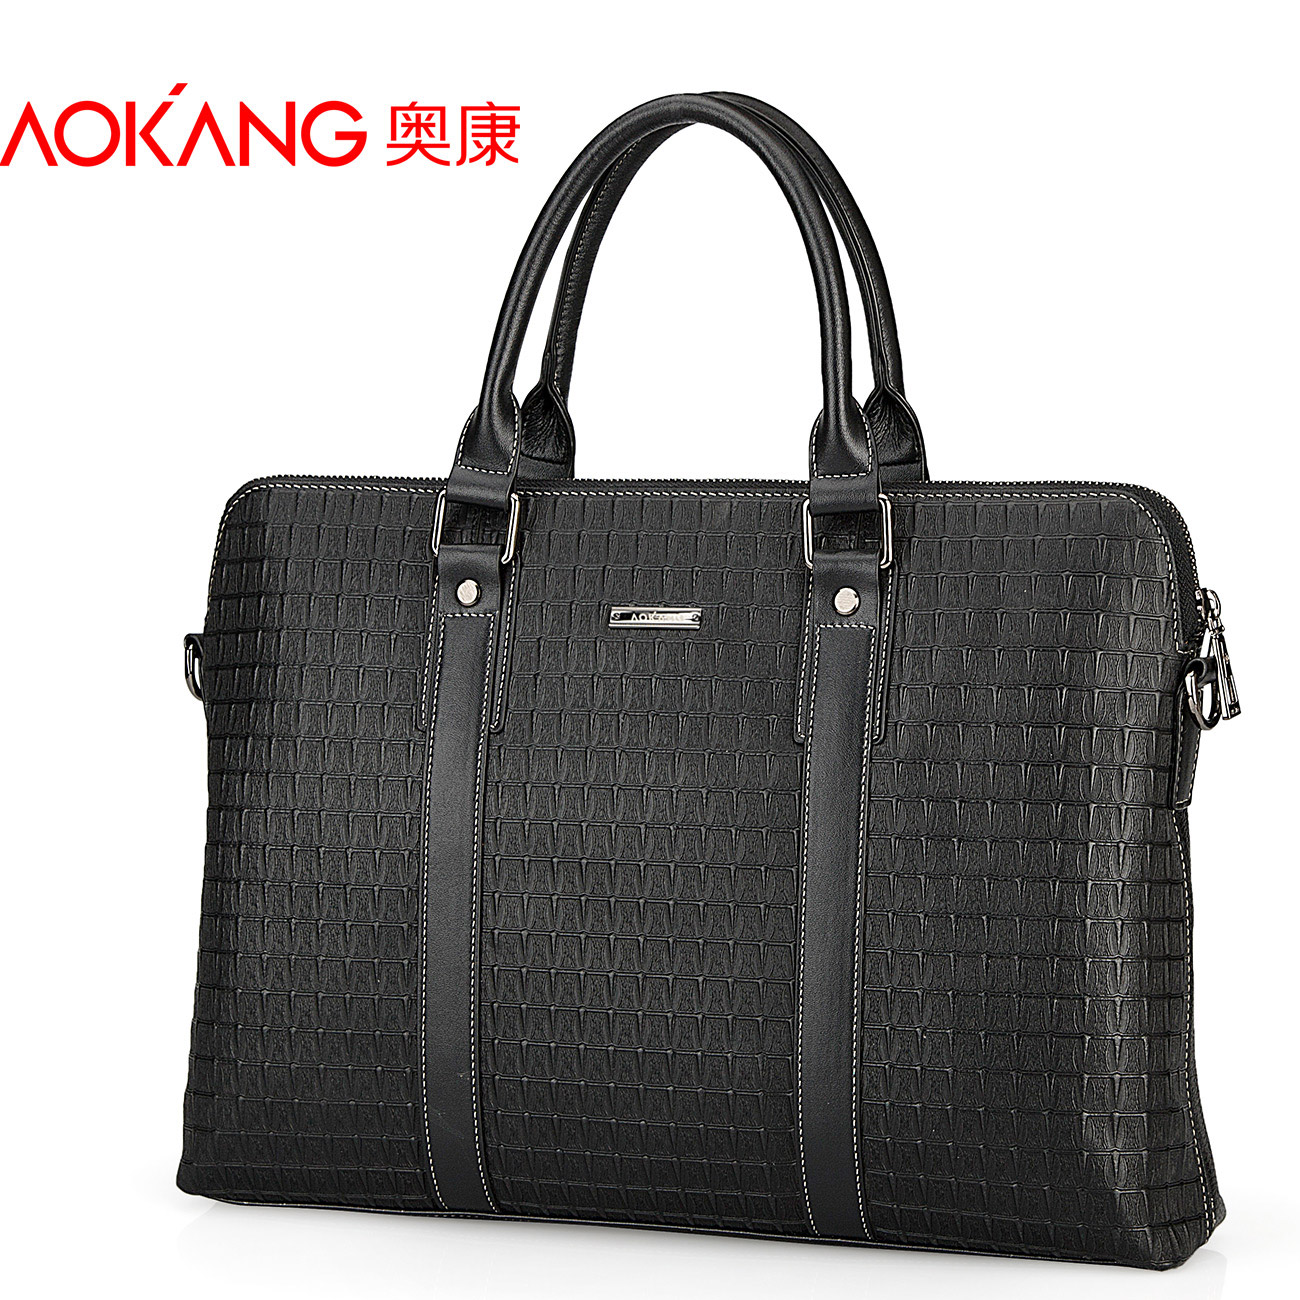 Aokang leather fine man bag business casual male genuine leather cross-body shoulder bag first layer of cowhide handbag bag<br><br>Aliexpress